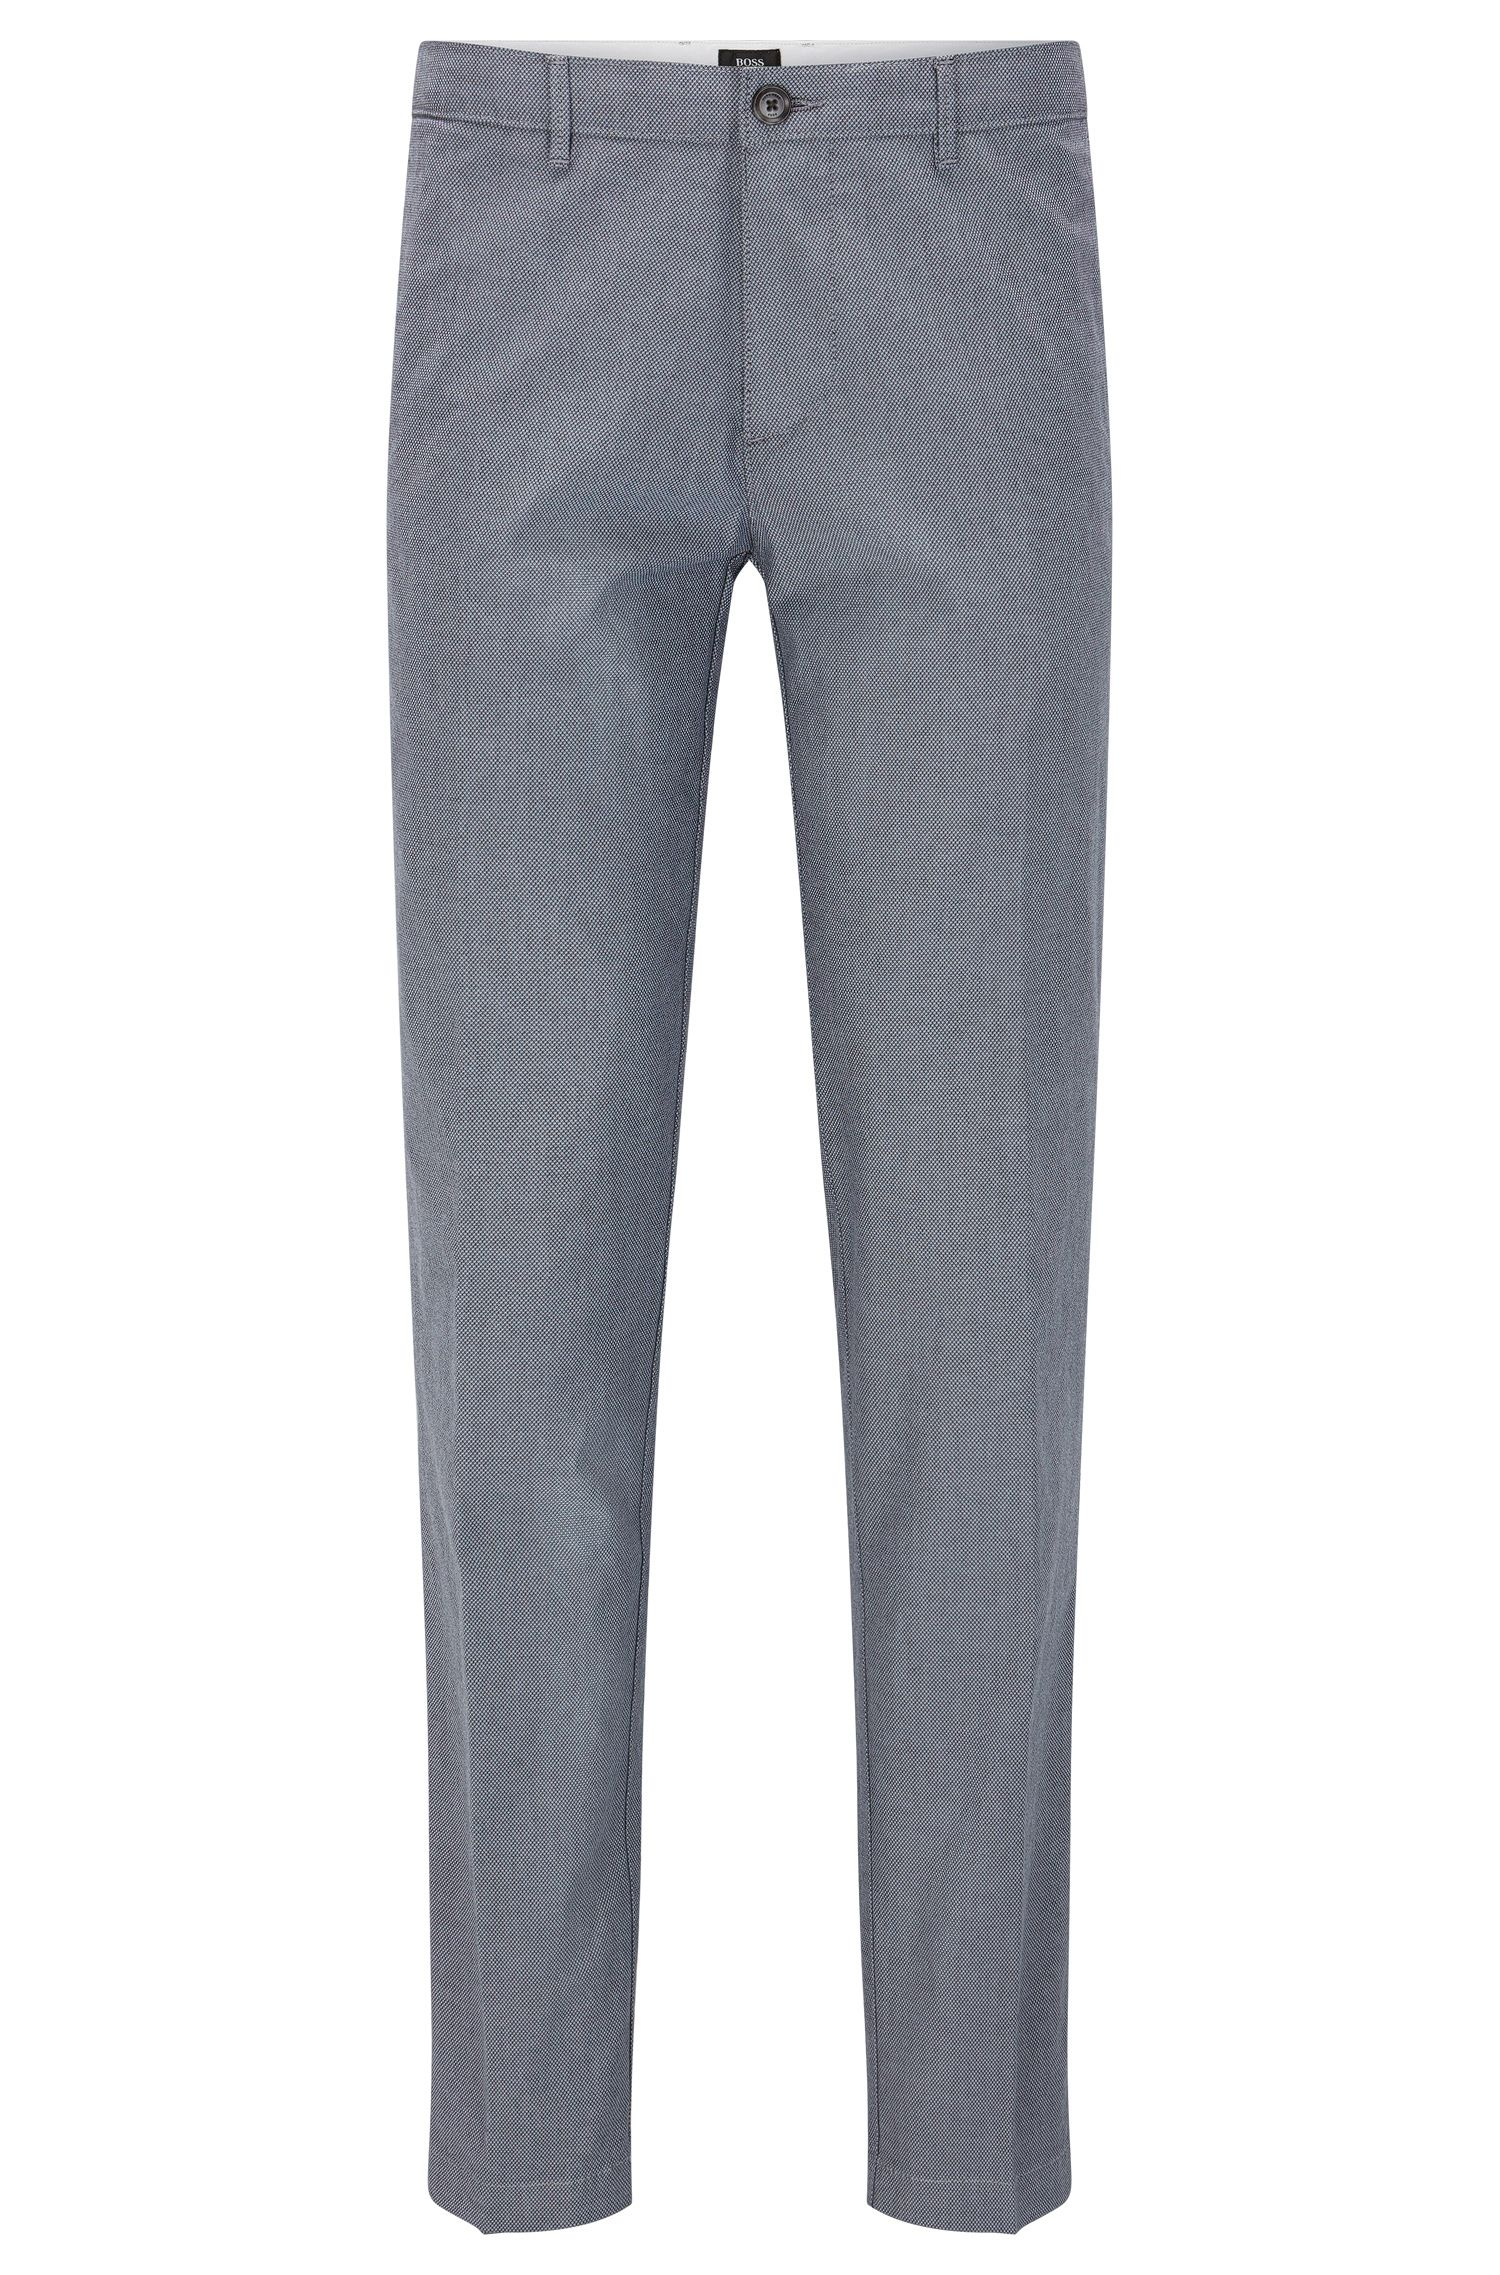 'Crigan W' | Regular Fit, Stretch Cotton Trousers